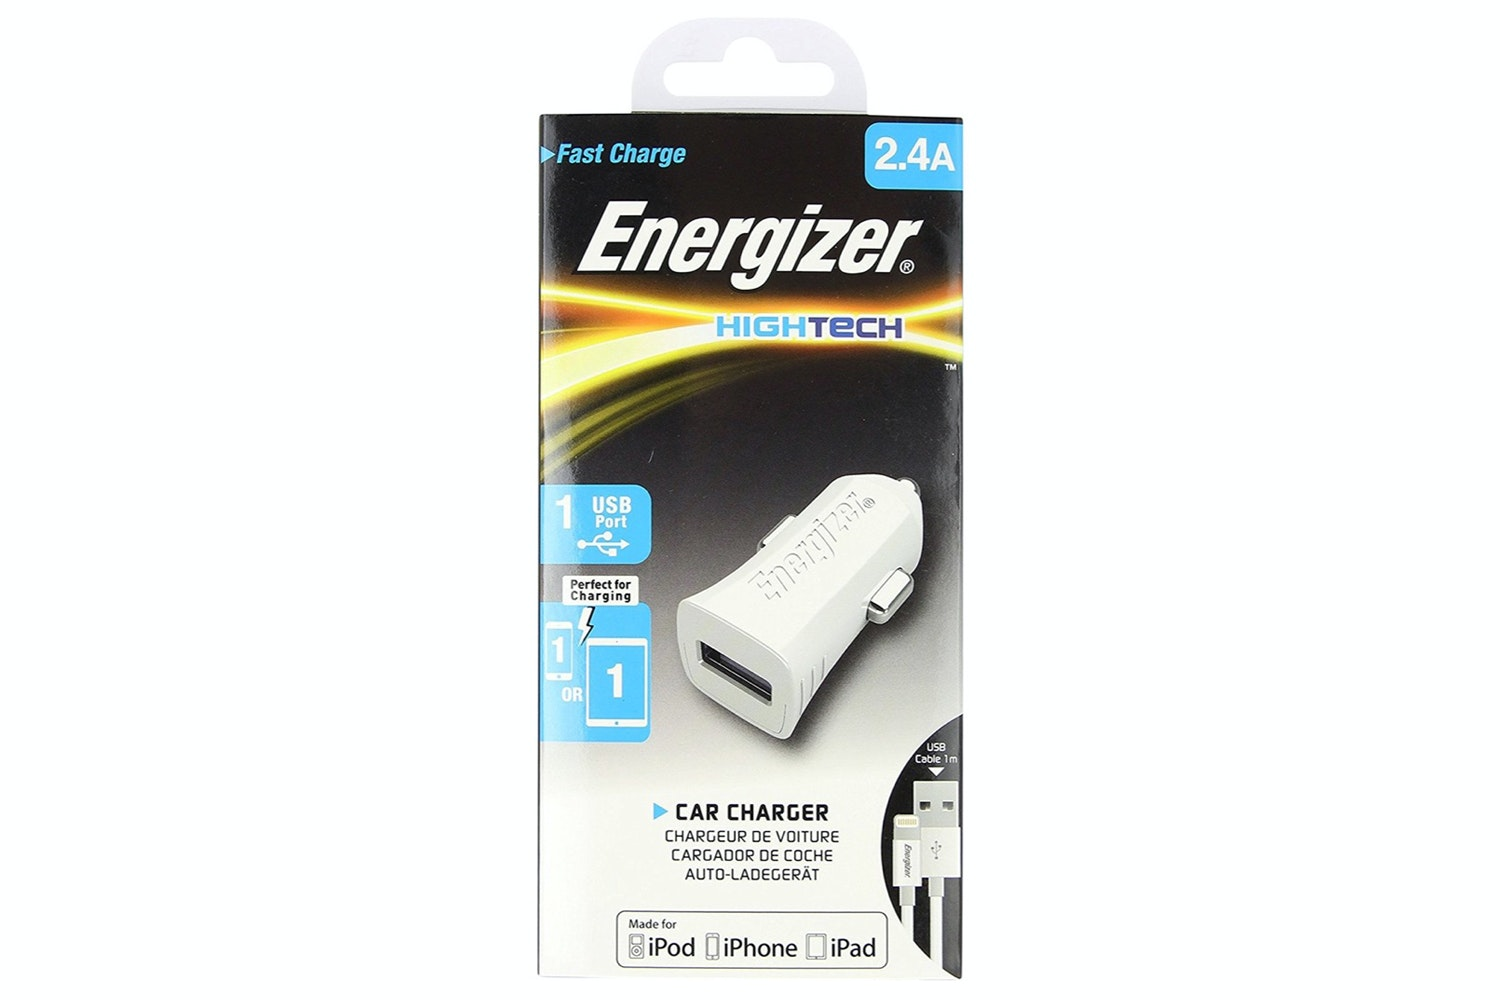 Energizer Lightning 2.4A USB Car Charger | White